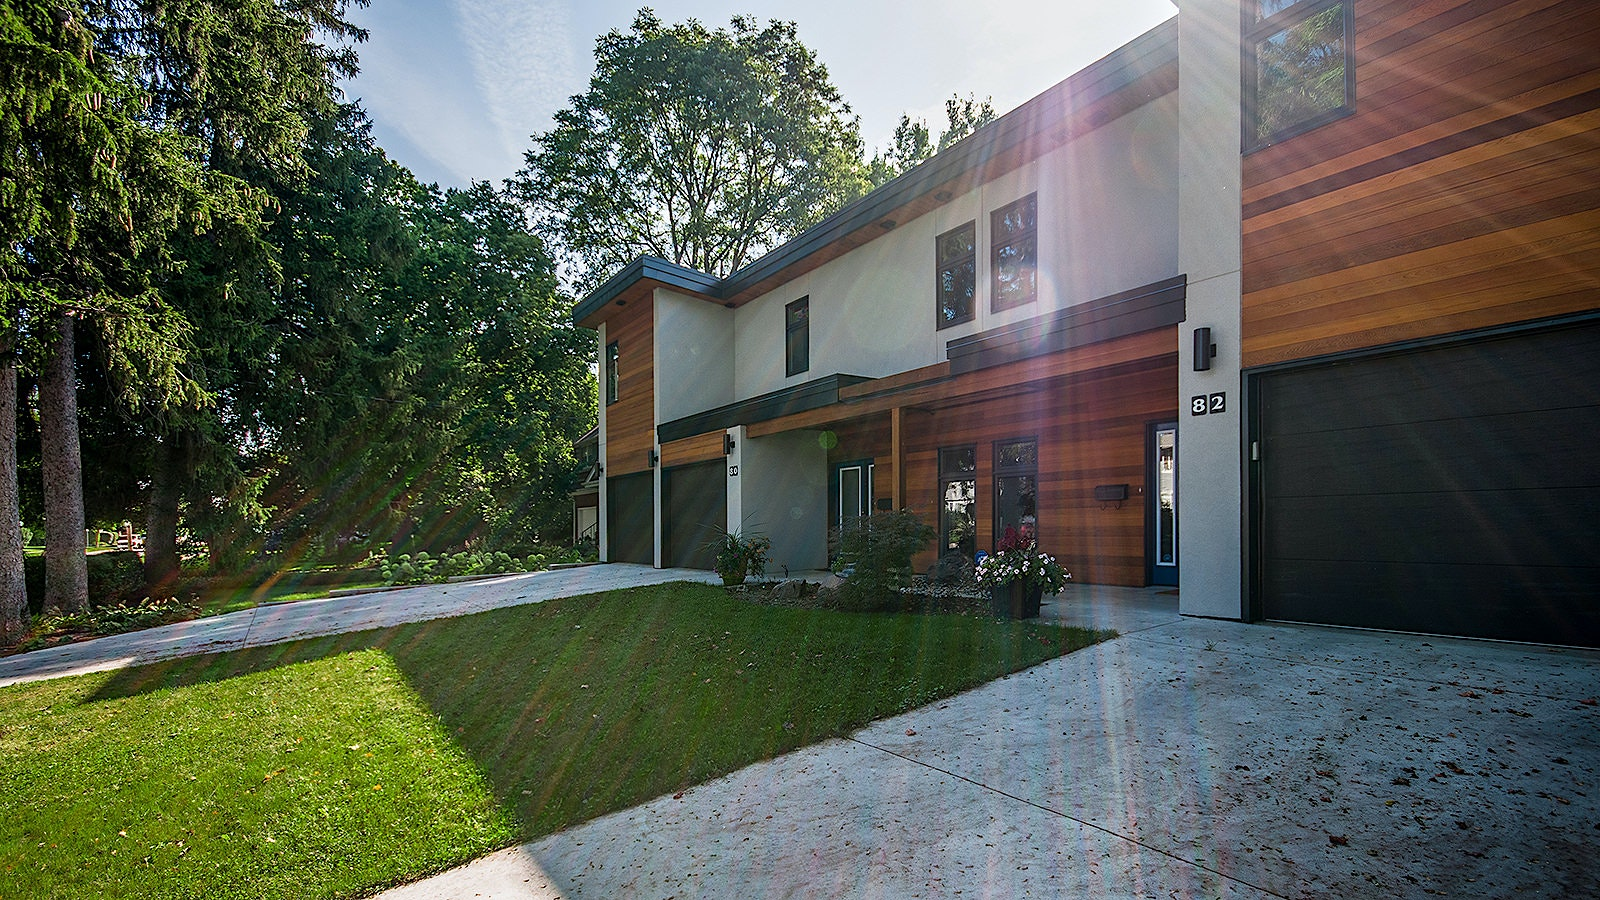 Architectural Photograph of Modern Home in Cavendish area London